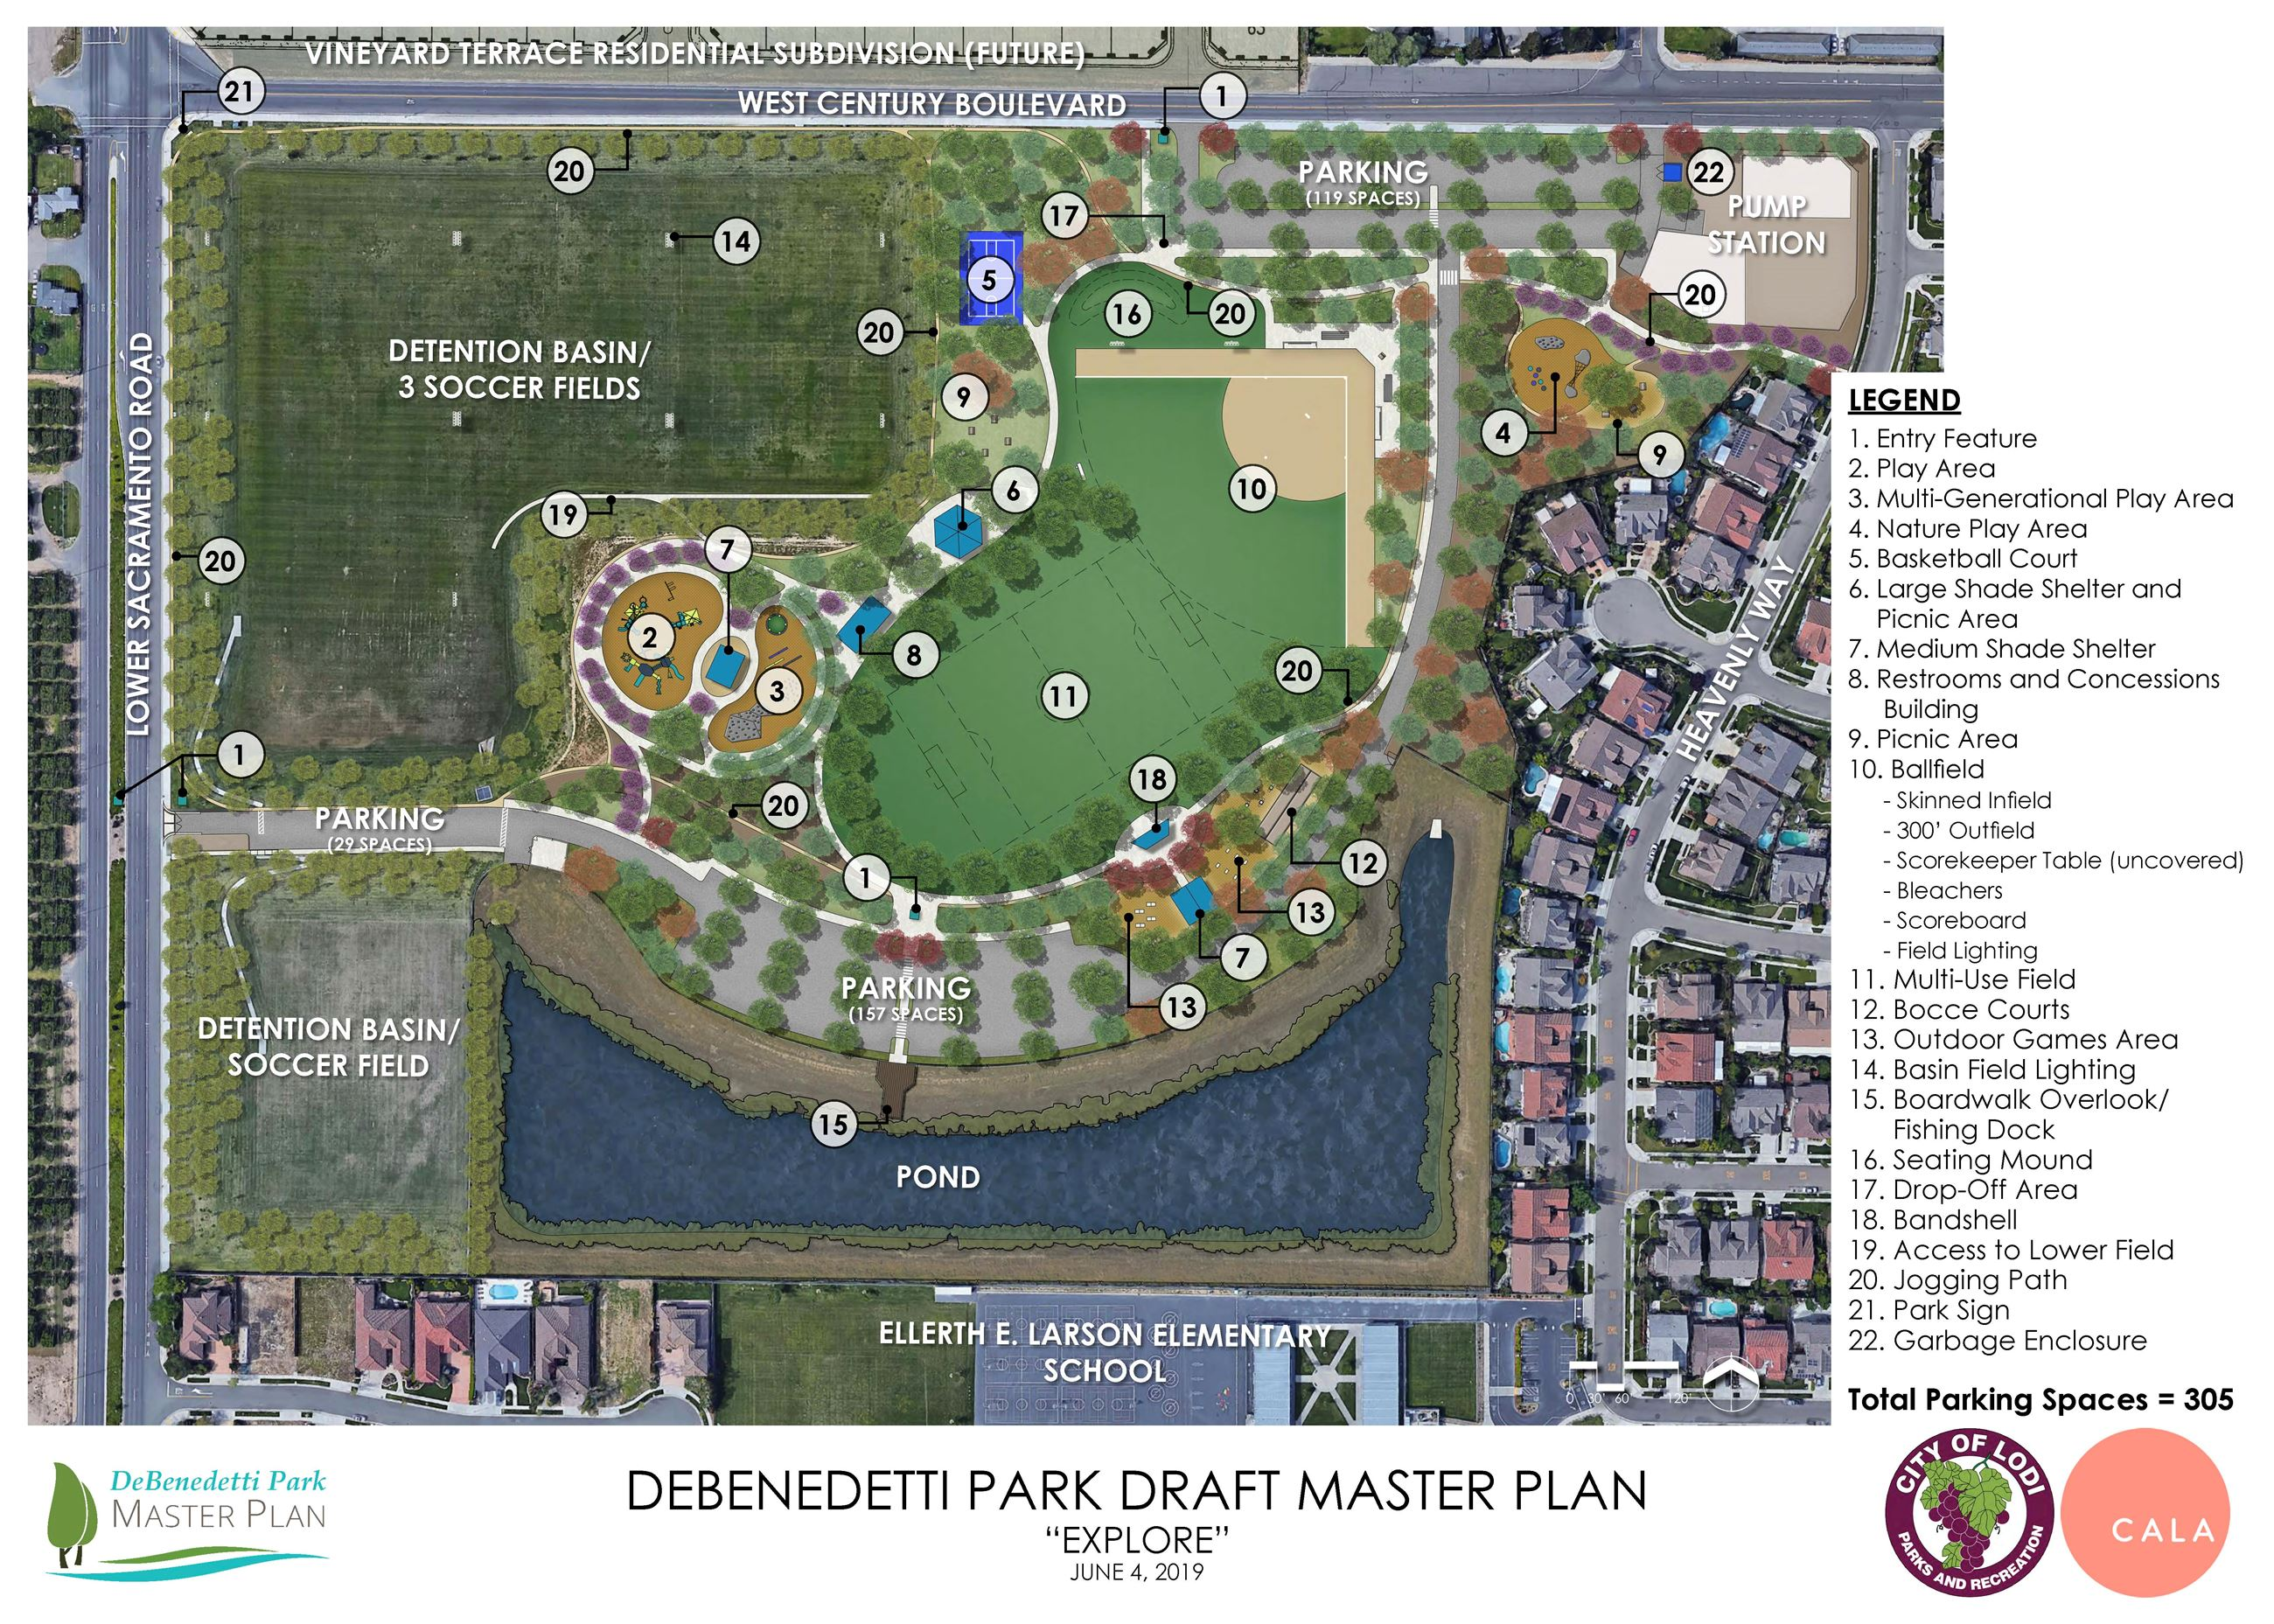 Draft plan of DeBenedetti Park